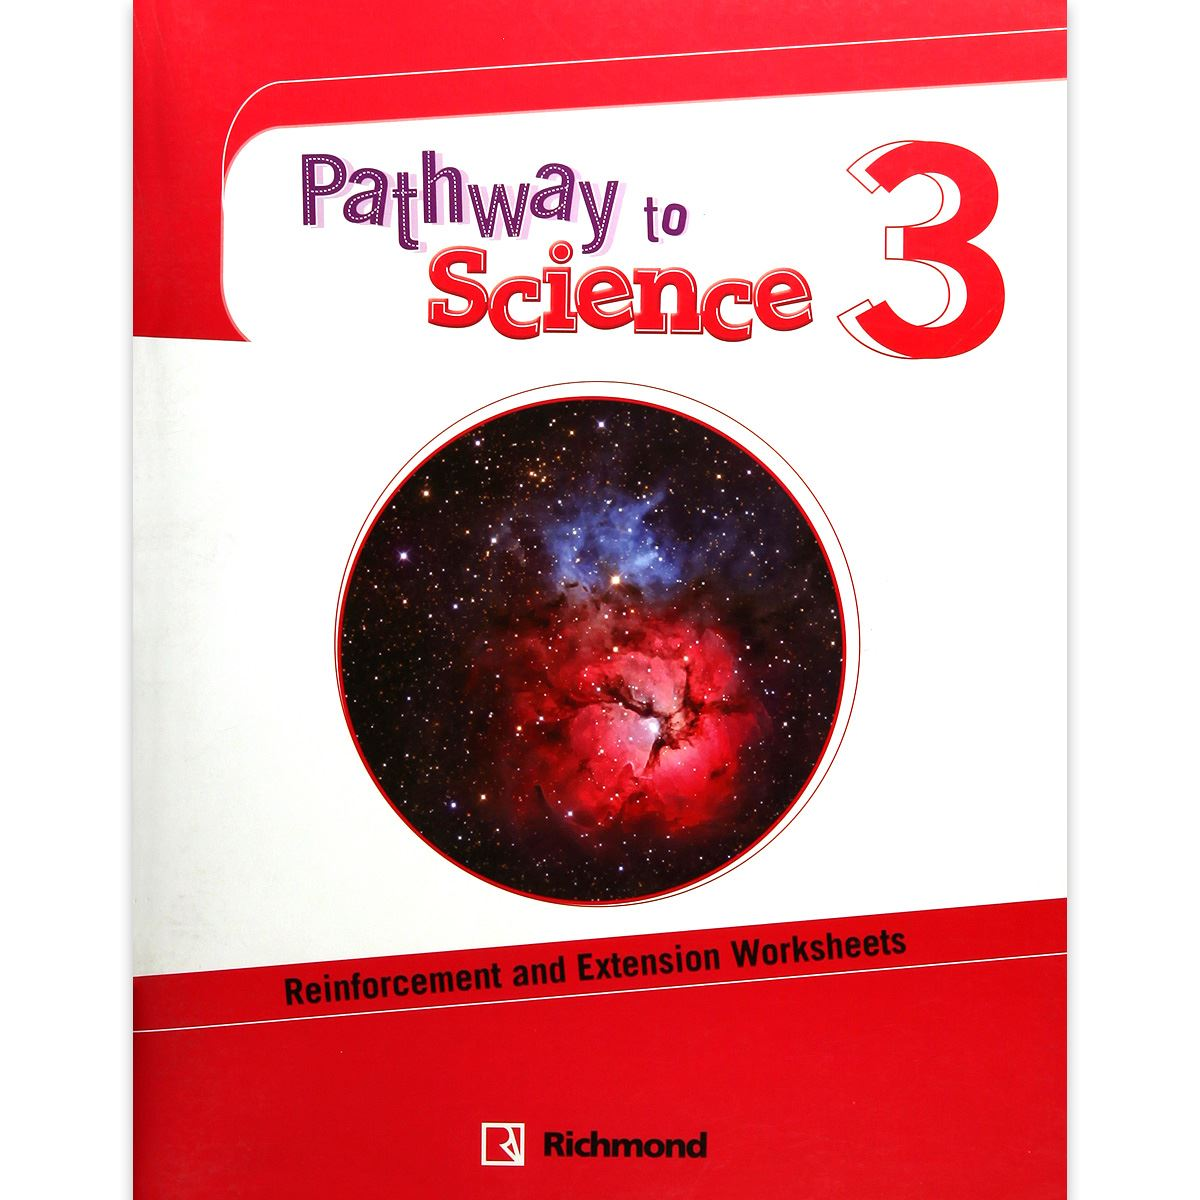 Pathway To Science 3 Reinforcement And Extension Worksheets